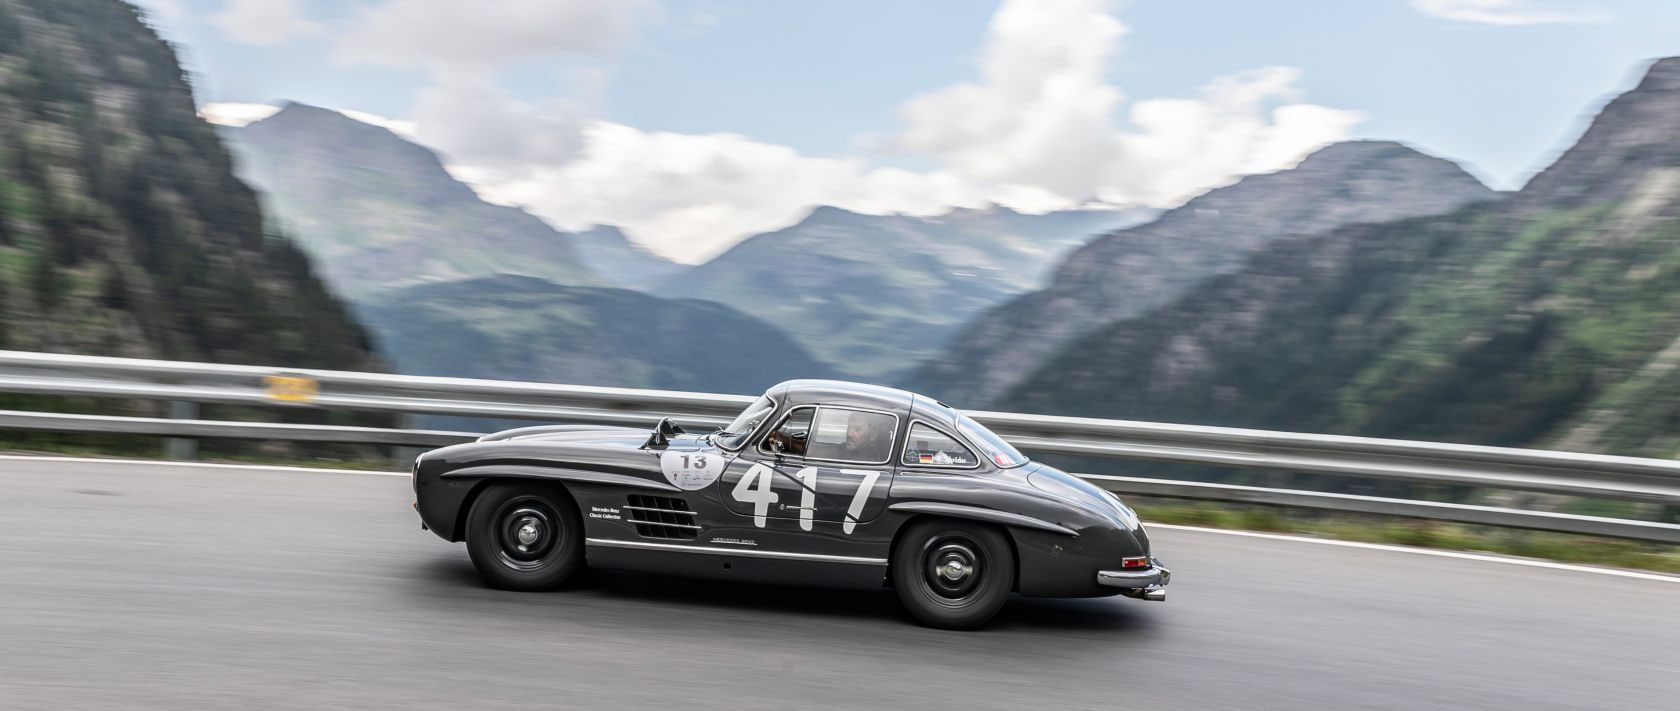 The grey Mercedes-Benz 300 SL with the starting number 417 at the Silvretta Classic Rallye Montafon.